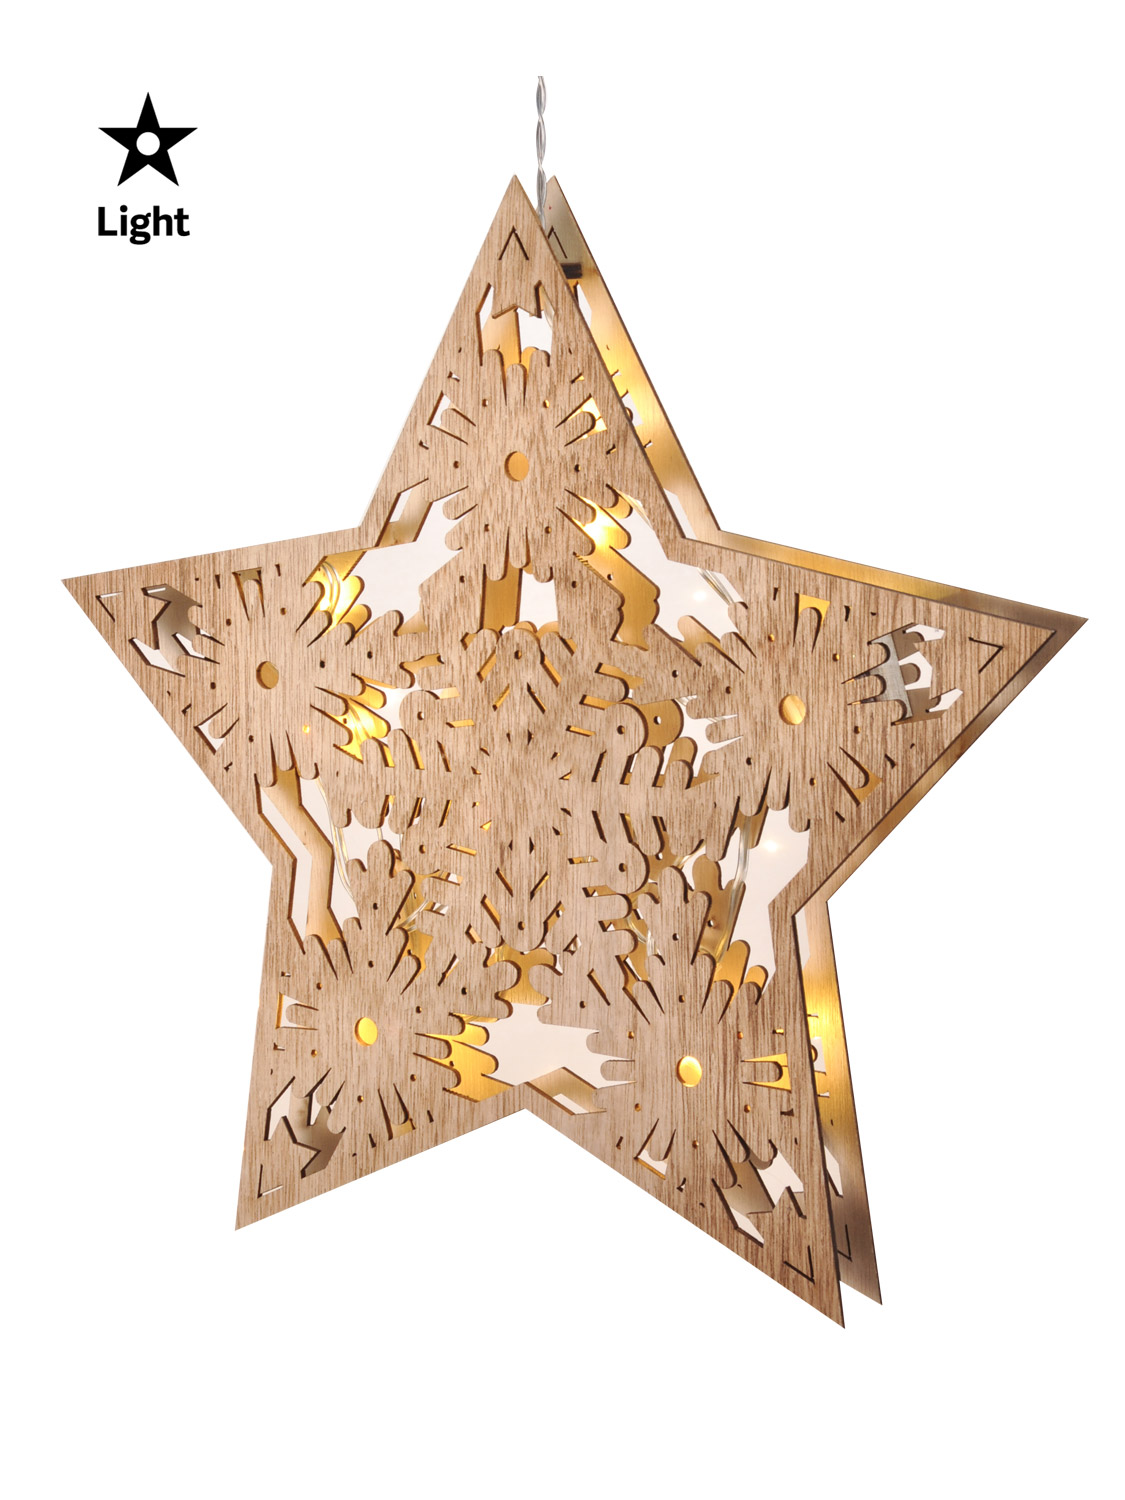 LED Wooden Hanging Star Light Up Christmas Decoration ...